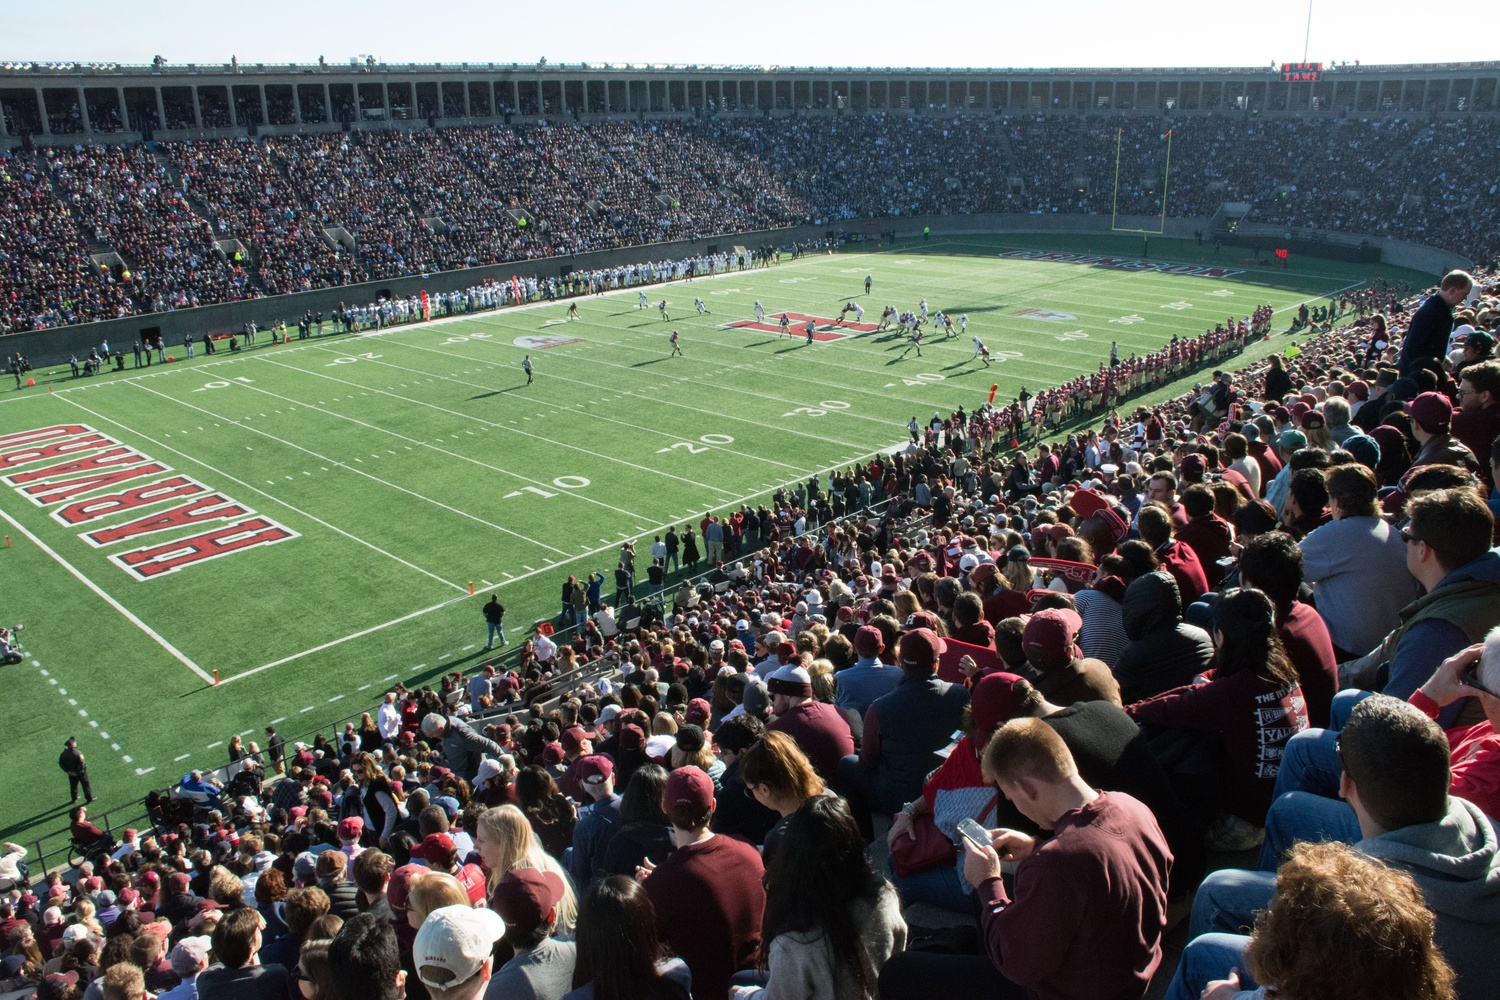 Instead of its usual venue at the Harvard Stadium pictured), the 135th Harvard-Yale football game will be played at Fenway Park next year.